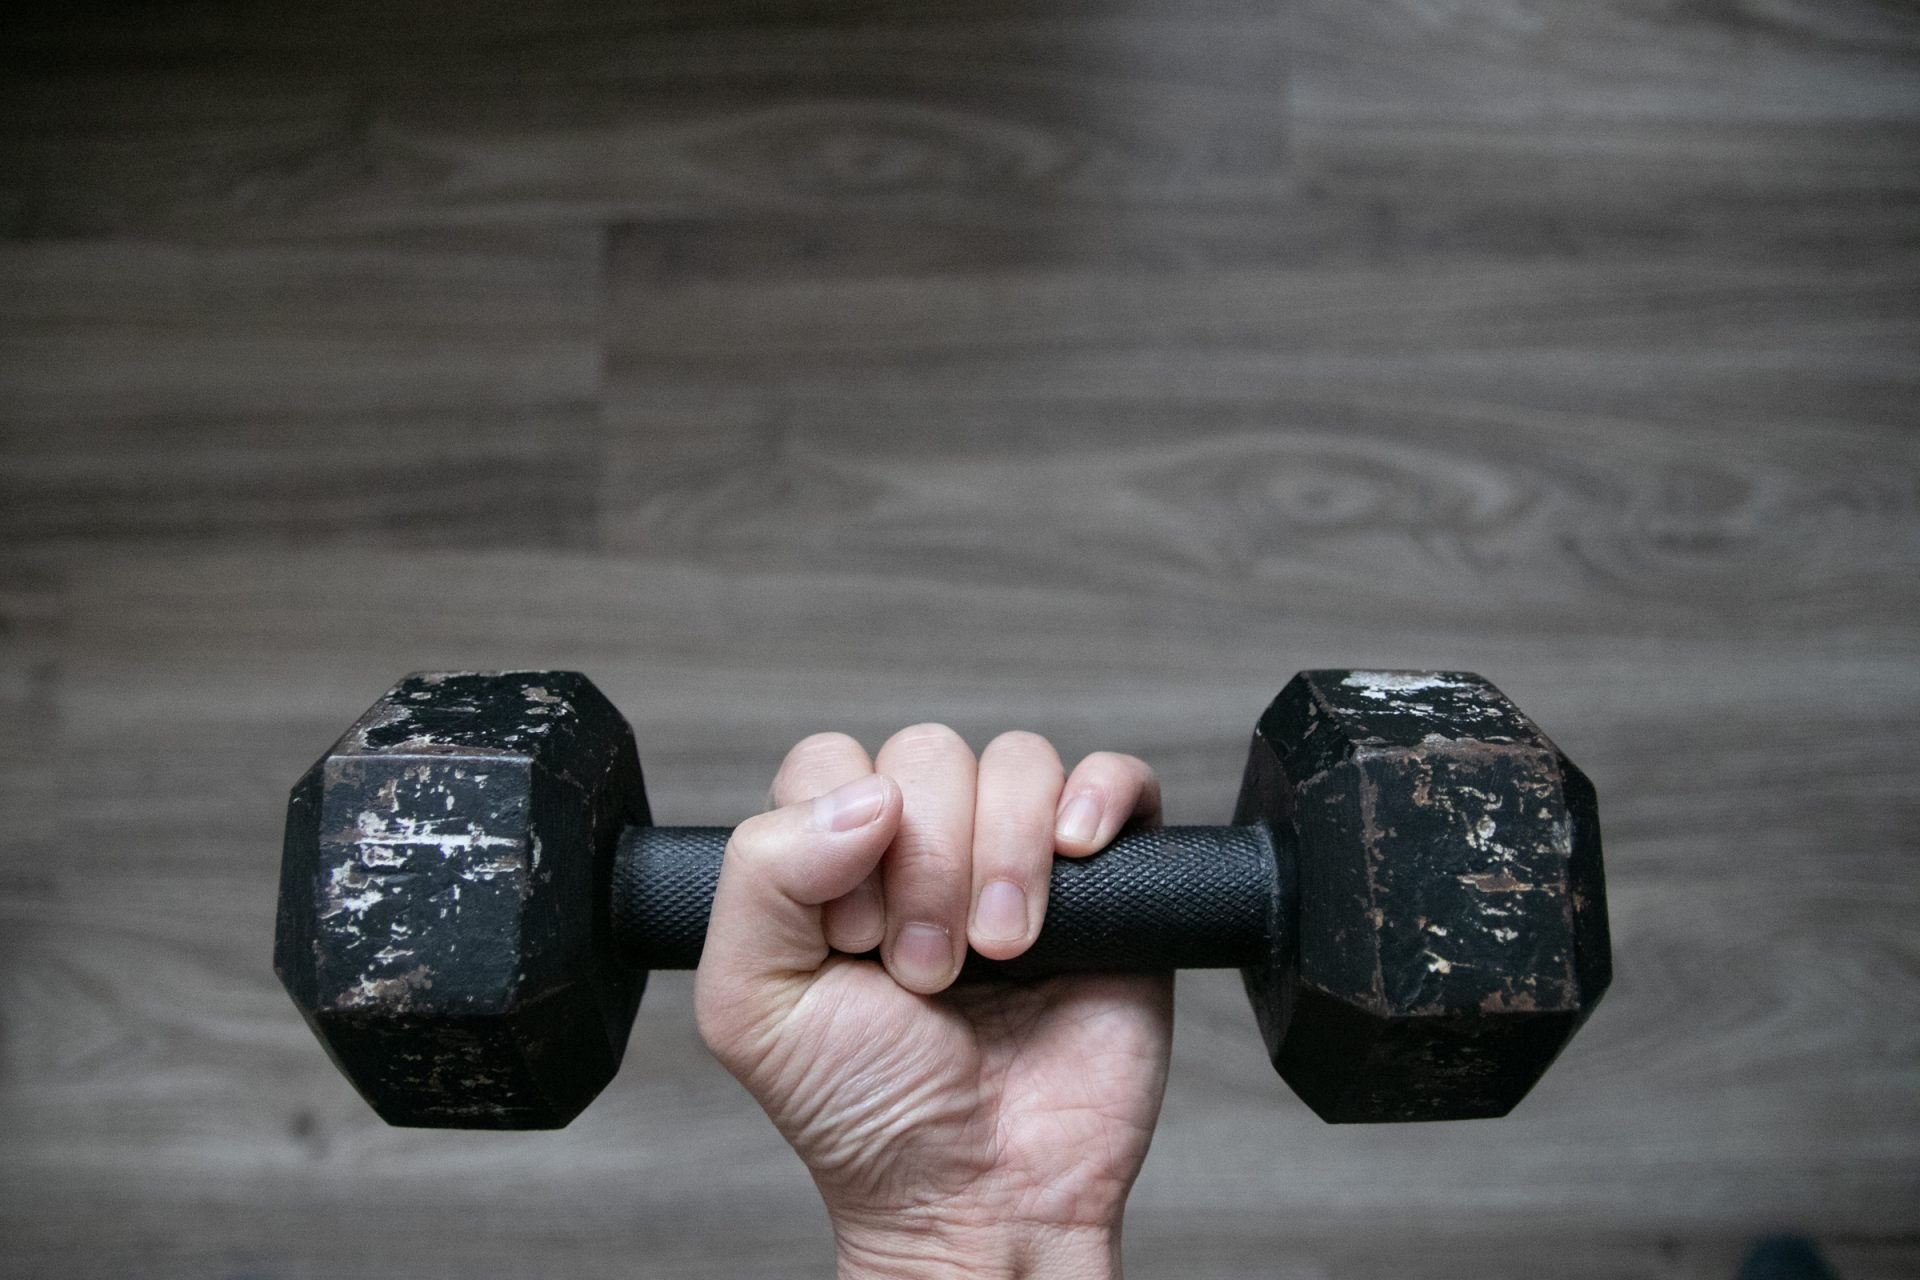 Left Hand Holding Scuffed Up Dumbbell